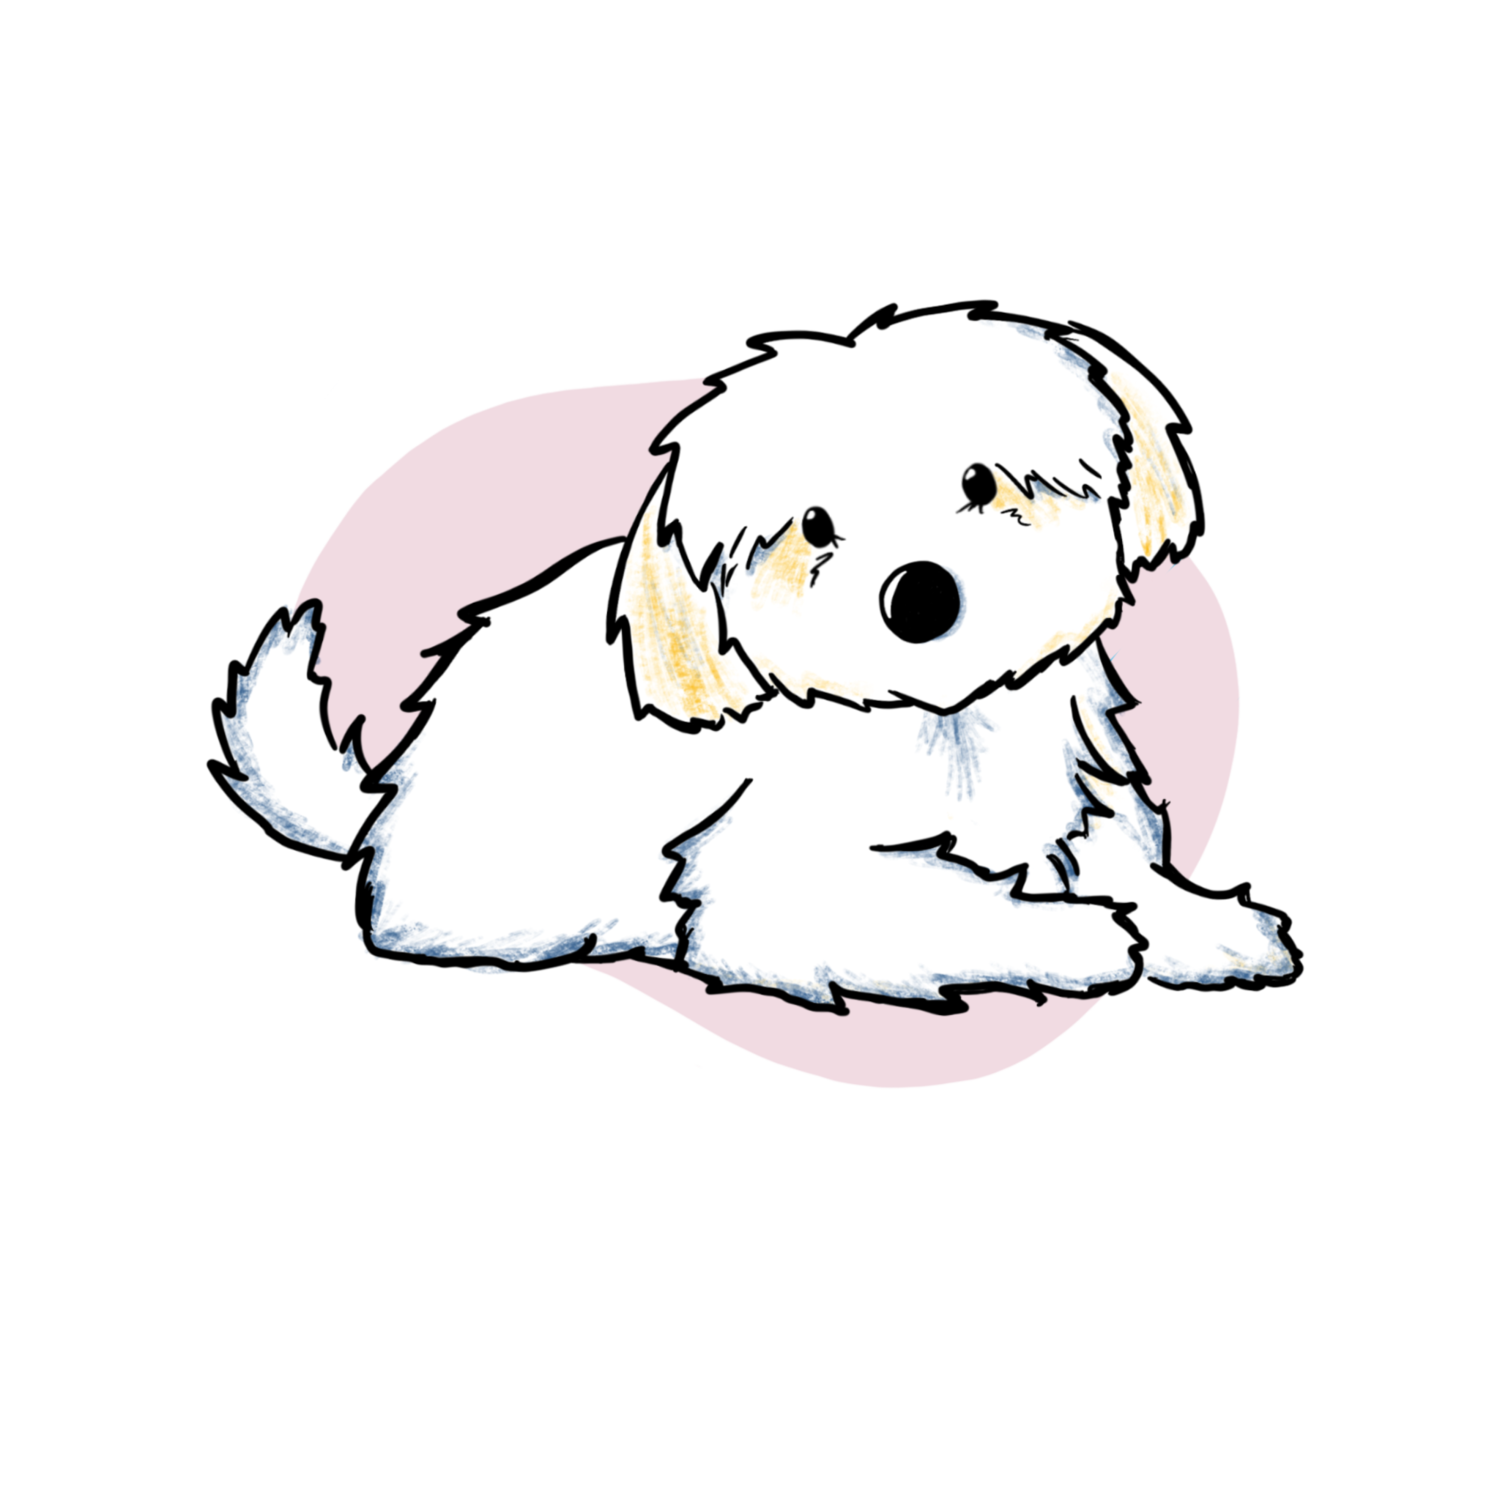 Pin By My Doodle Maltipoos On Https Www Mydoodlemaltipoos Com Maltipoo Puppy Maltipoo Puppies For Sale Puppy Adoption